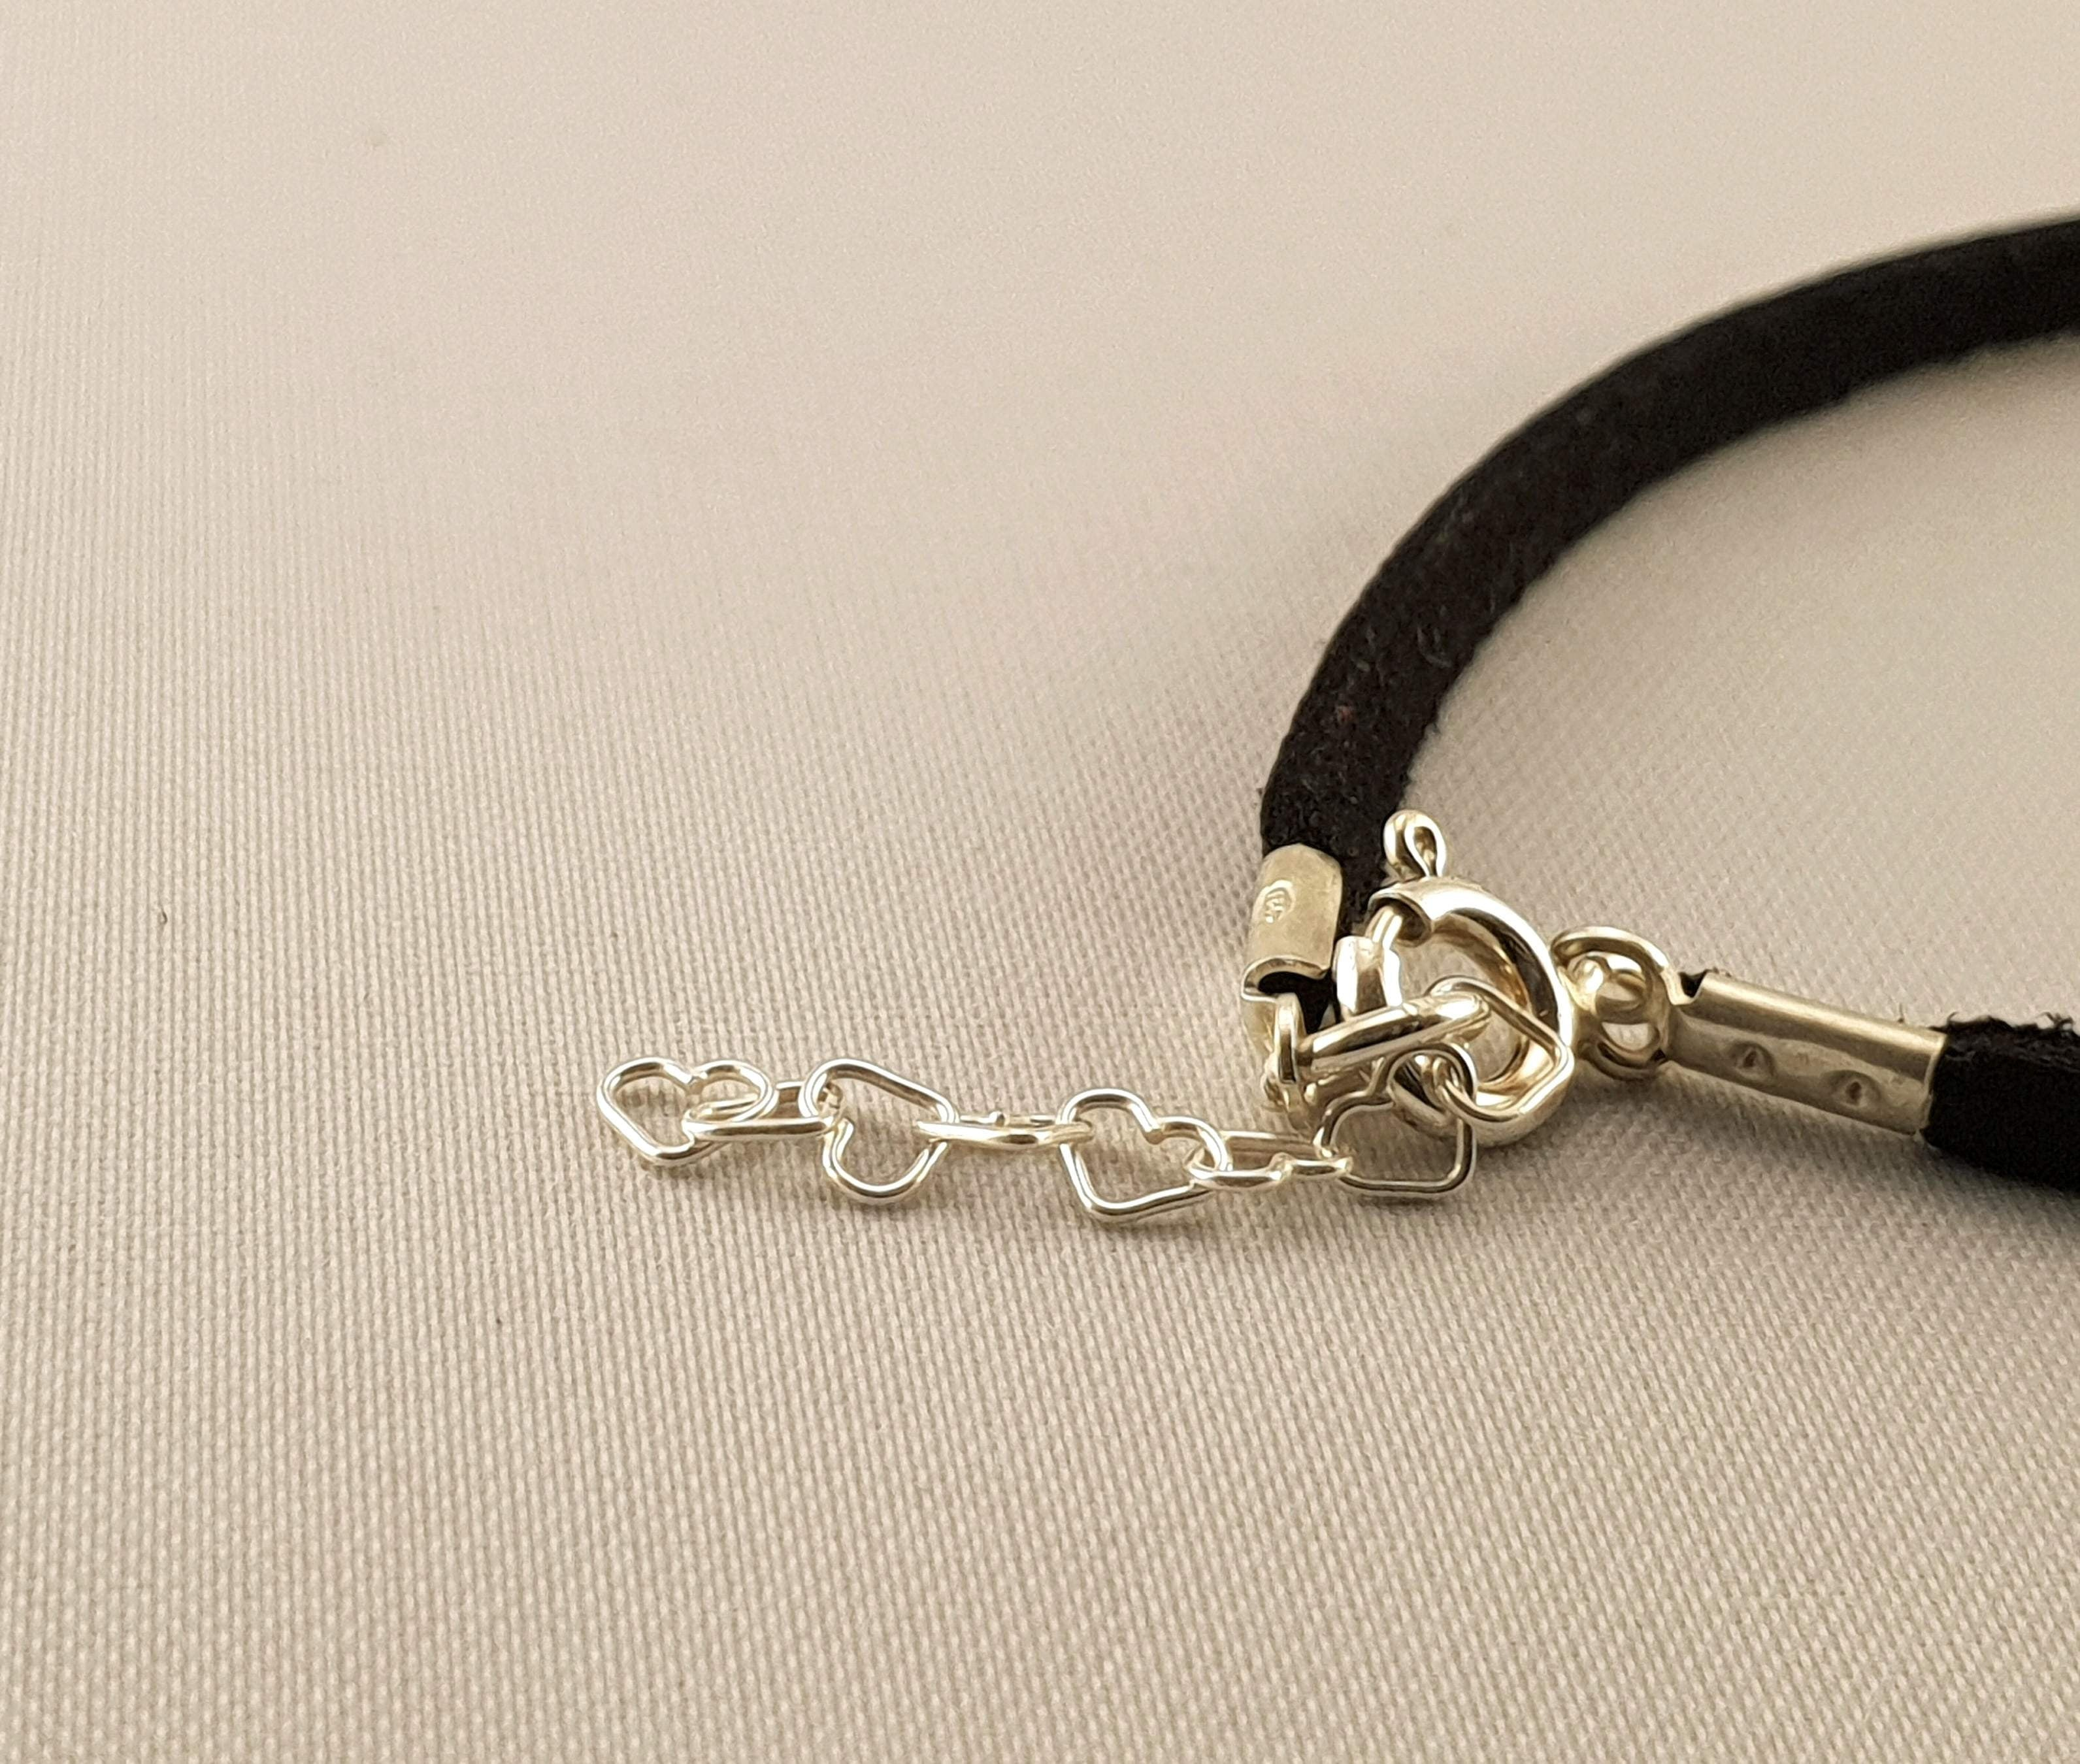 Leather Bracelet - Infinity Silver Heart - Leather Bracelet - By Janine Jewellery